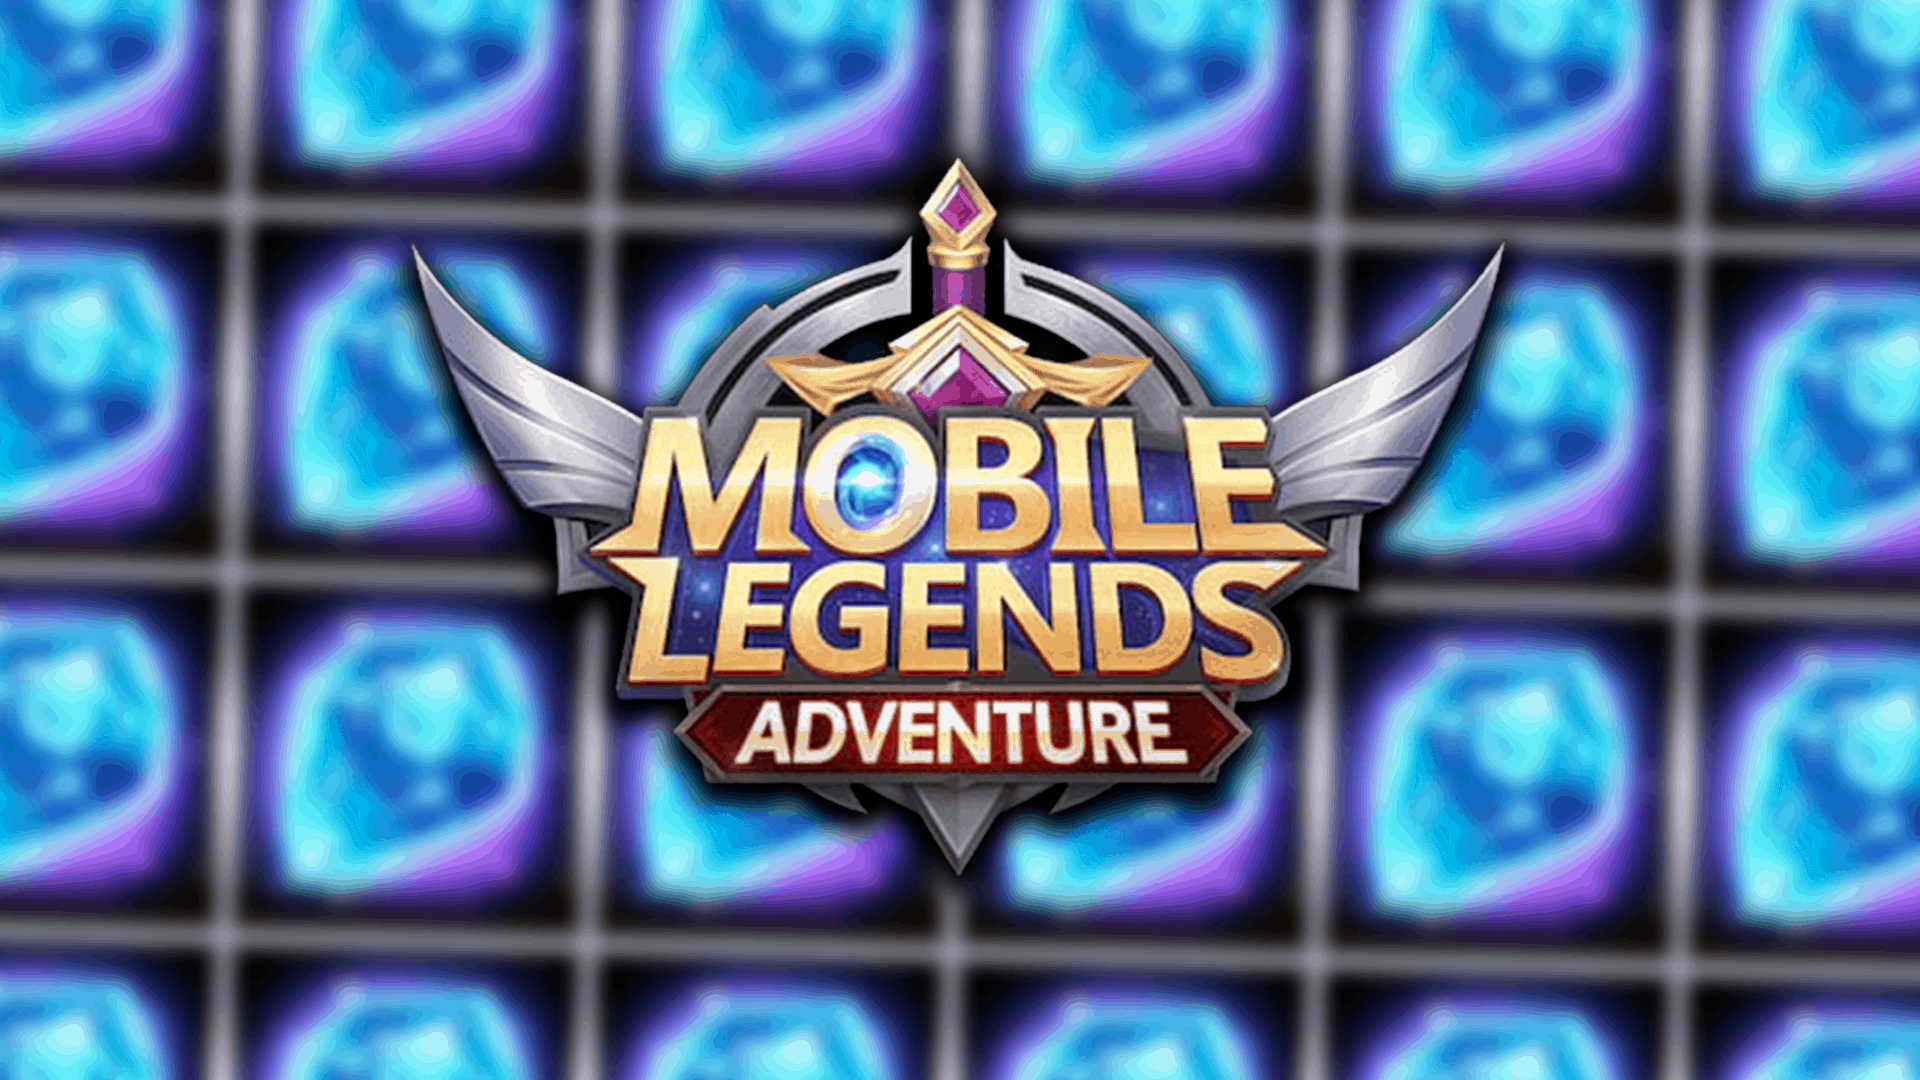 Mobile Legends: Adventure – How To Get Skill Stone